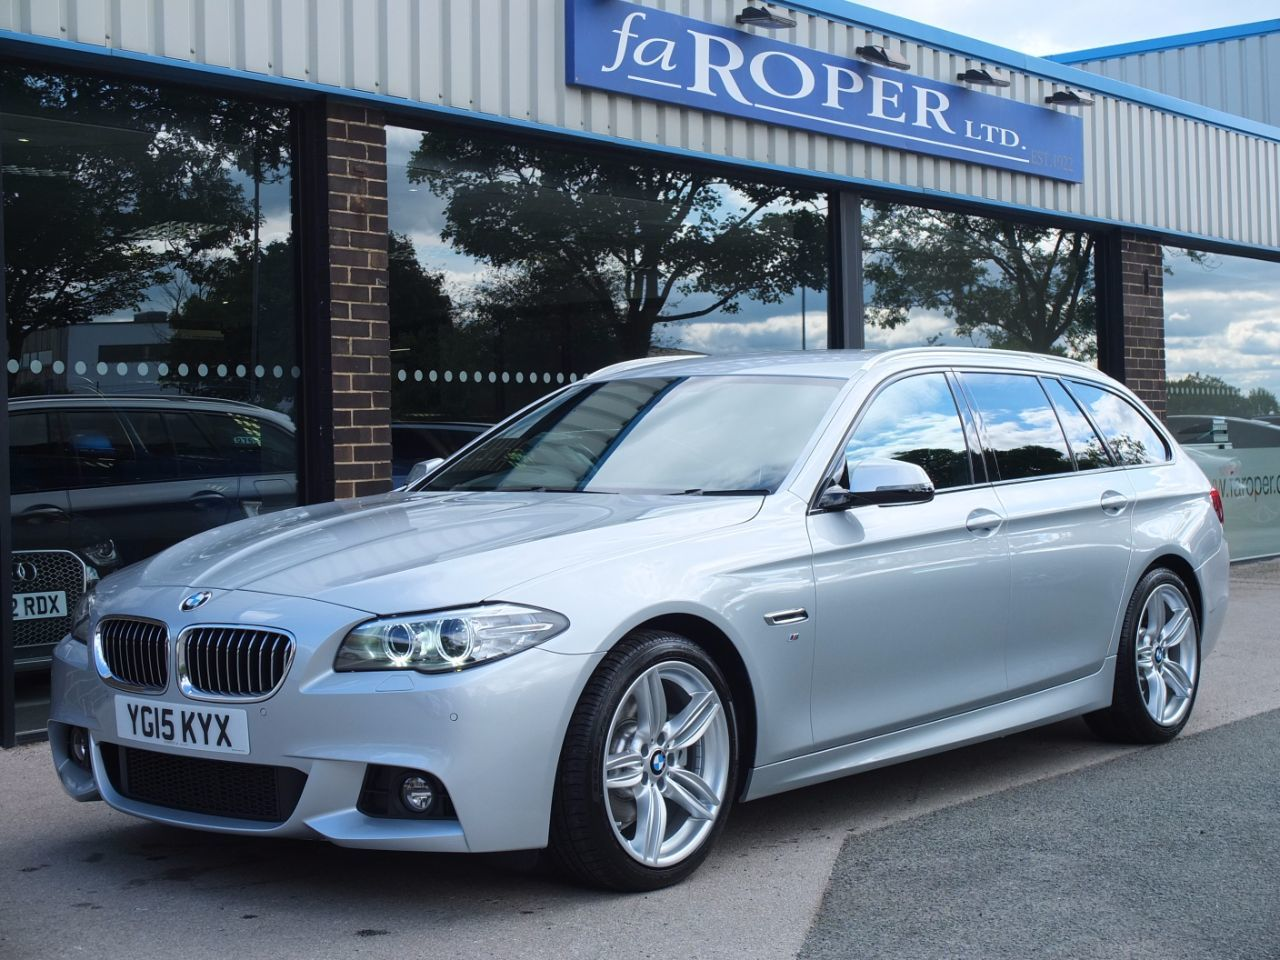 second hand bmw 5 series 520d 190ps m sport touring auto spec for sale in bradford west. Black Bedroom Furniture Sets. Home Design Ideas